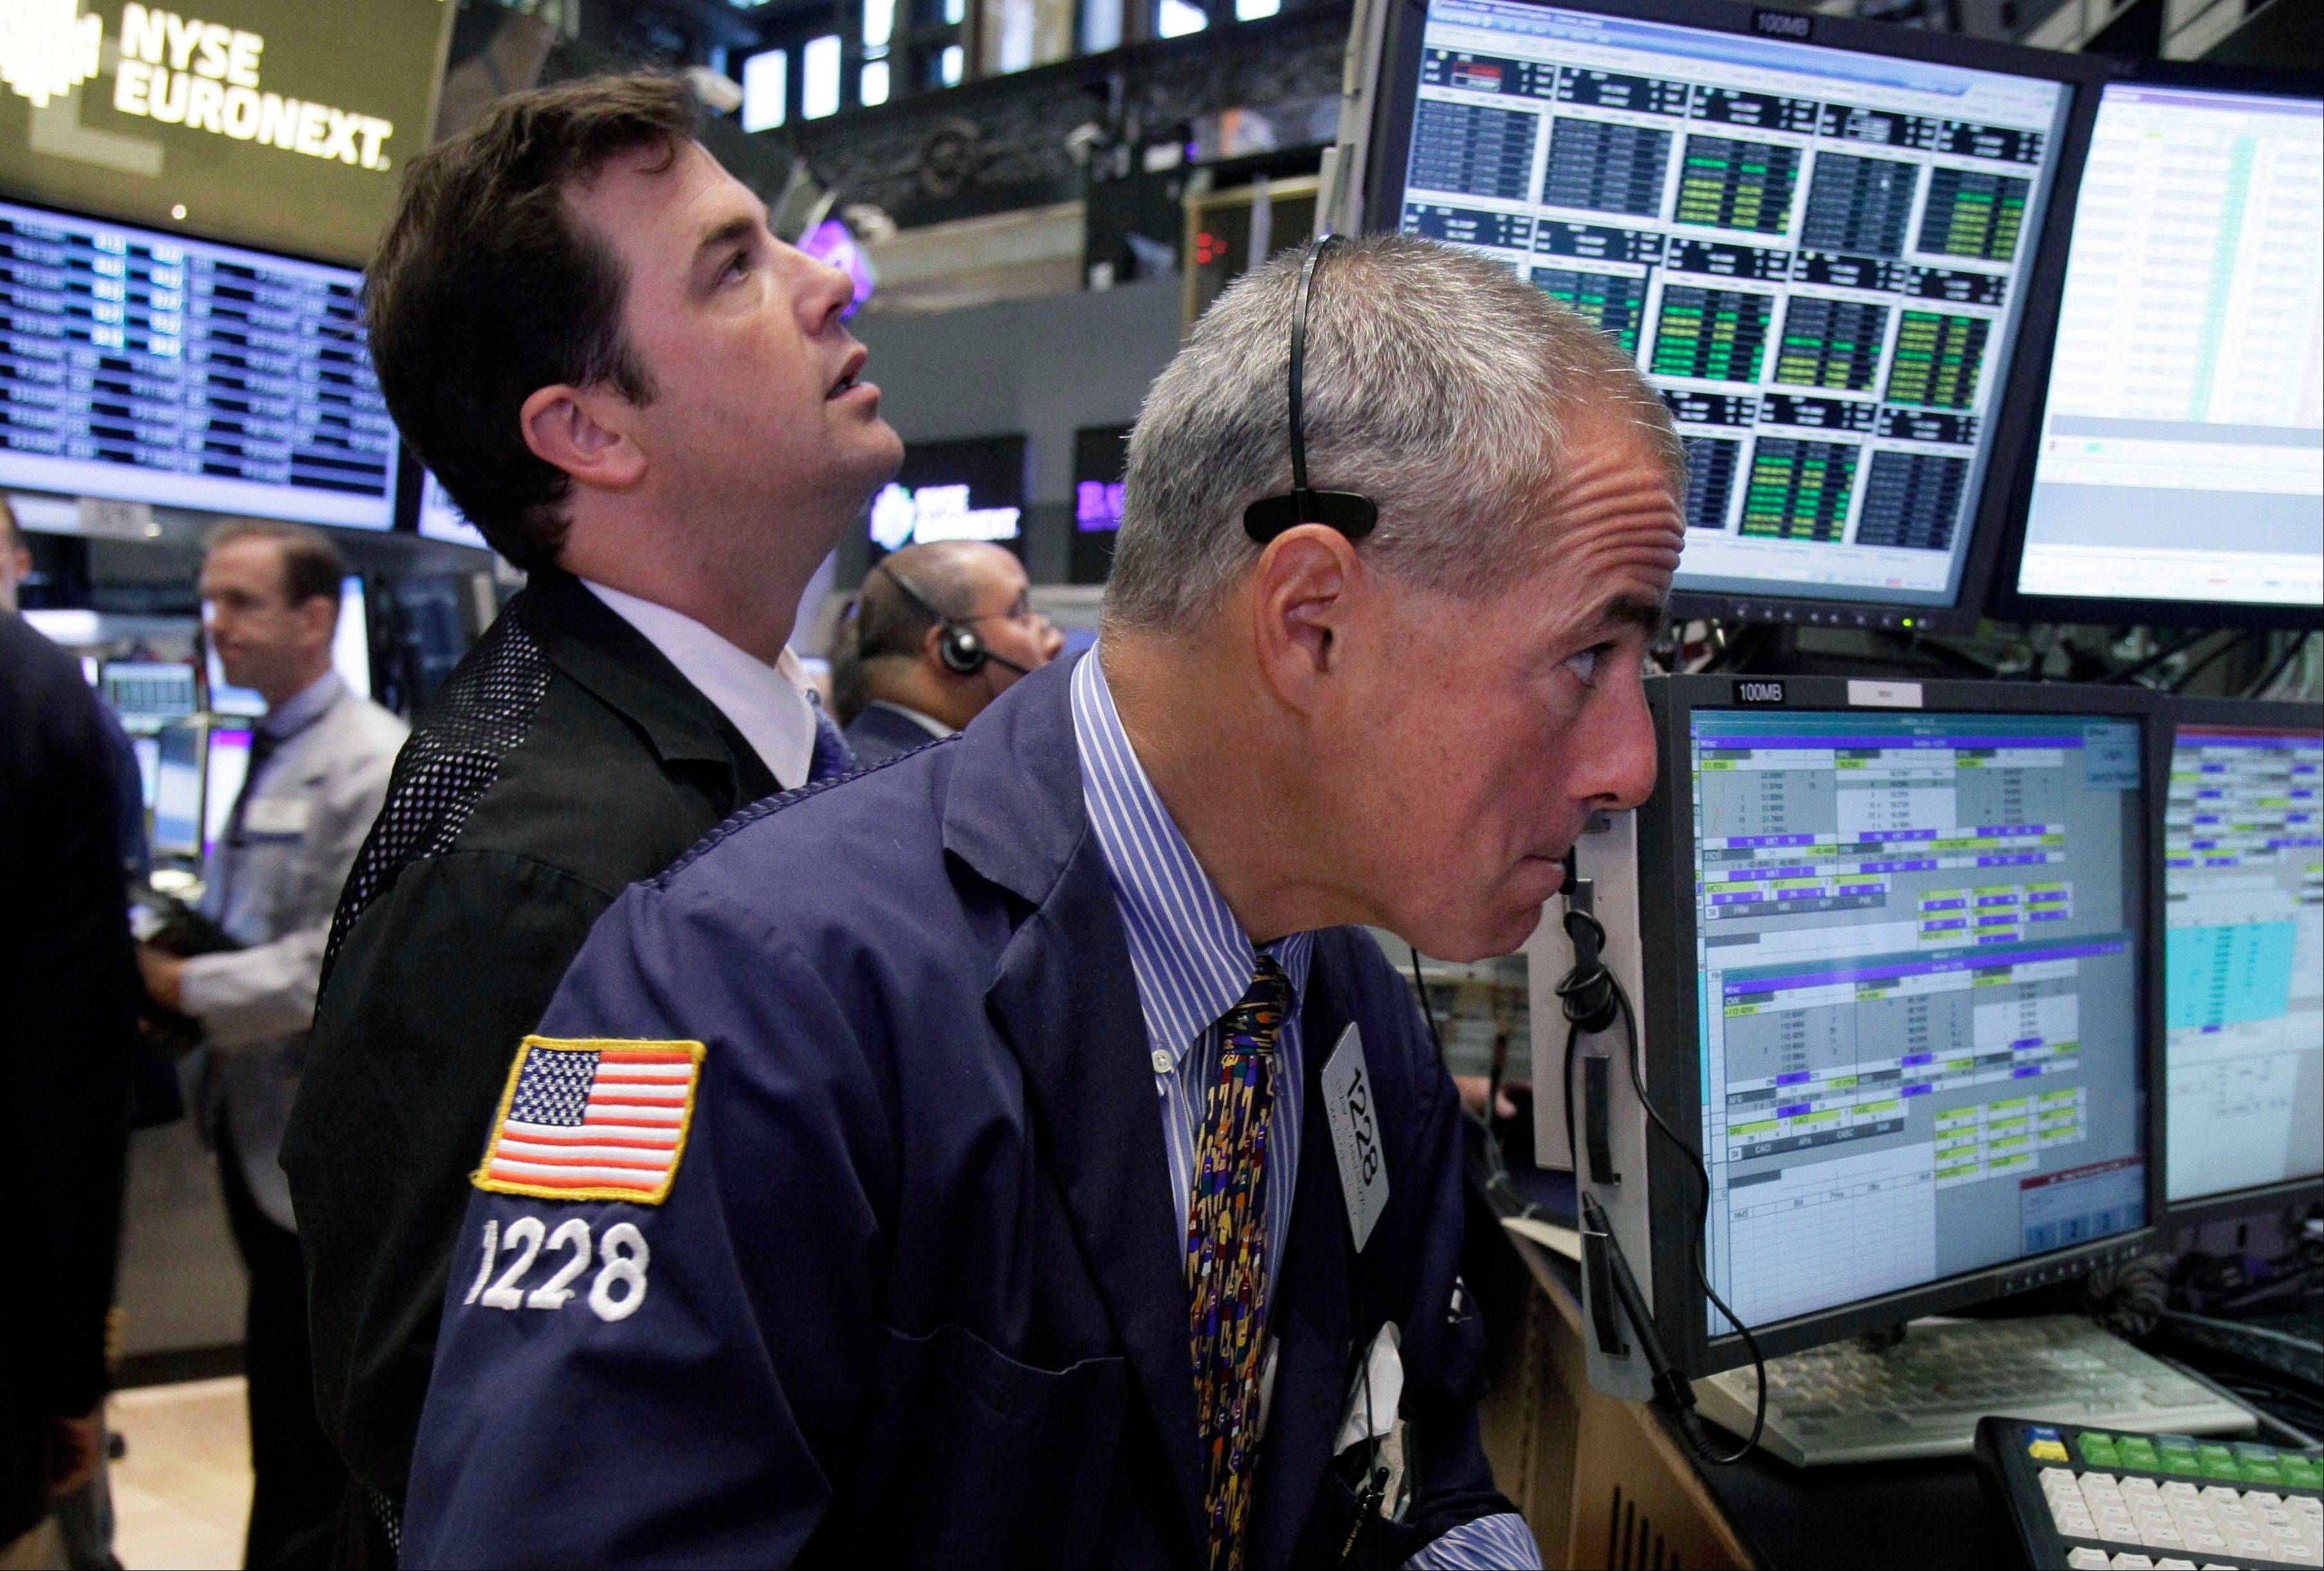 U.S. stocks fell, following the first weekly decline in about two months for the Standard & Poor's 500 Index, as investors awaited indications on whether the Federal Reserve will provide further stimulus measures.